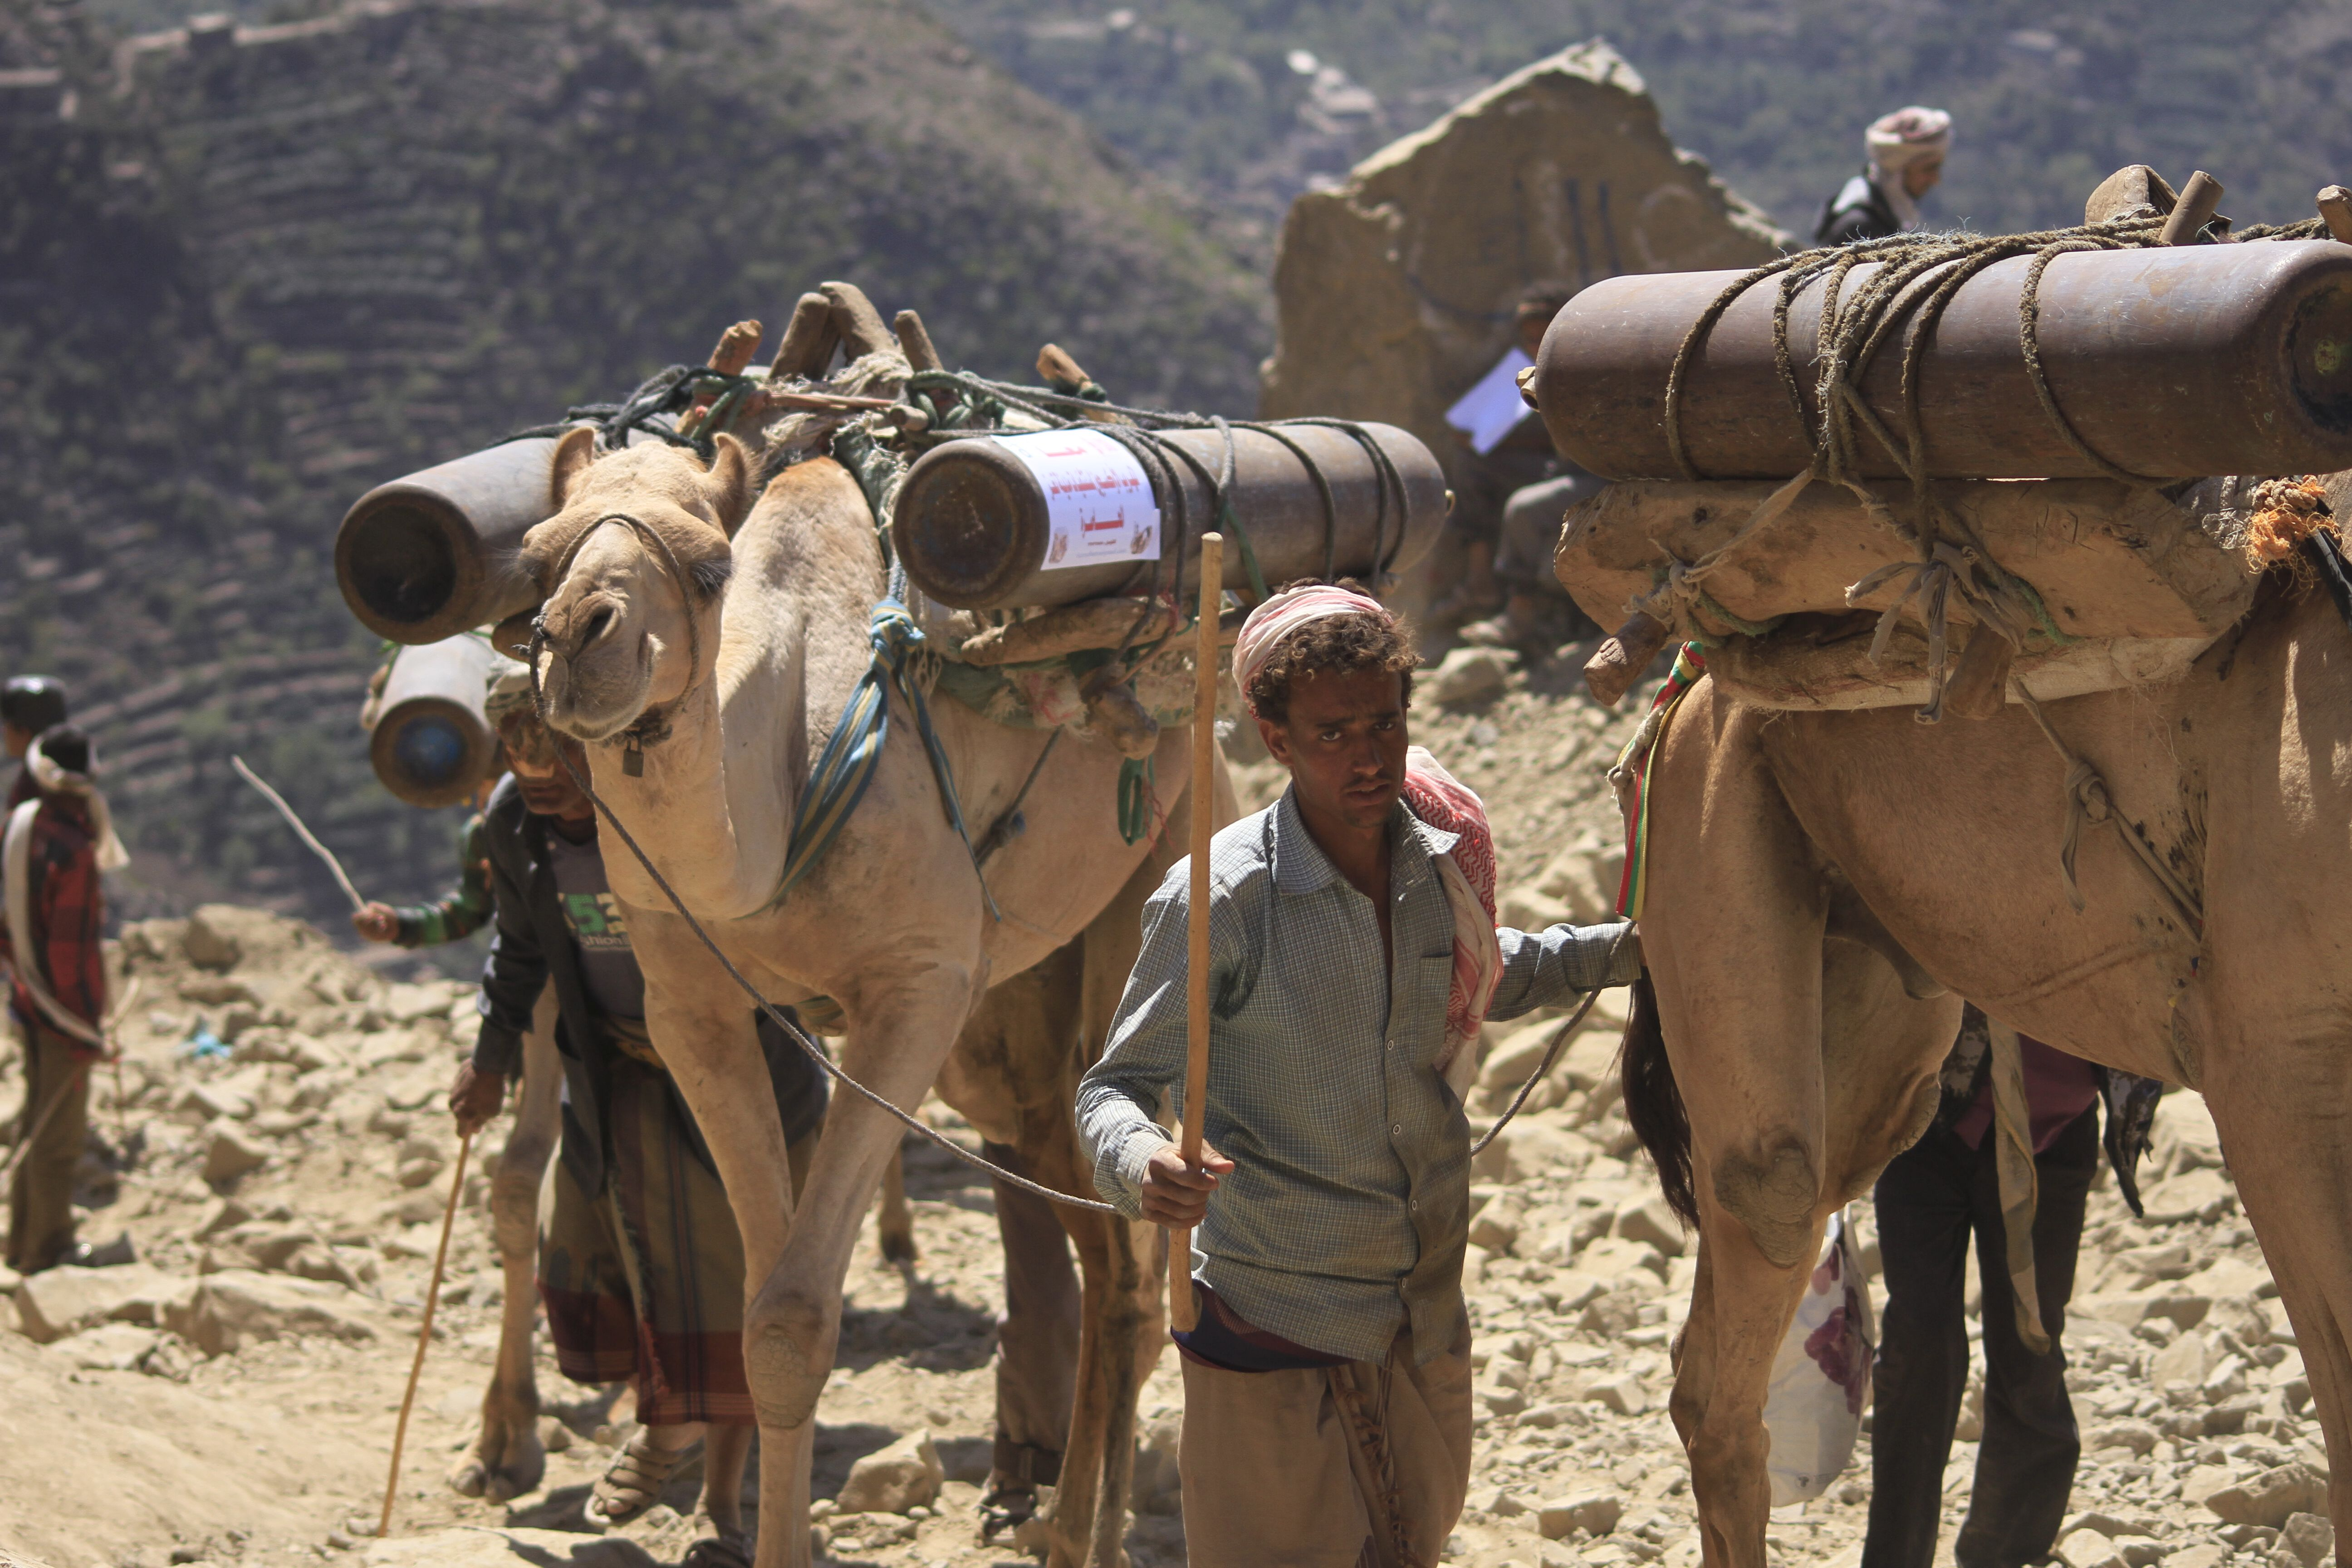 Smugglers bring oxygen canisters over the mountains into Taiz, a besieged city in Yemen.